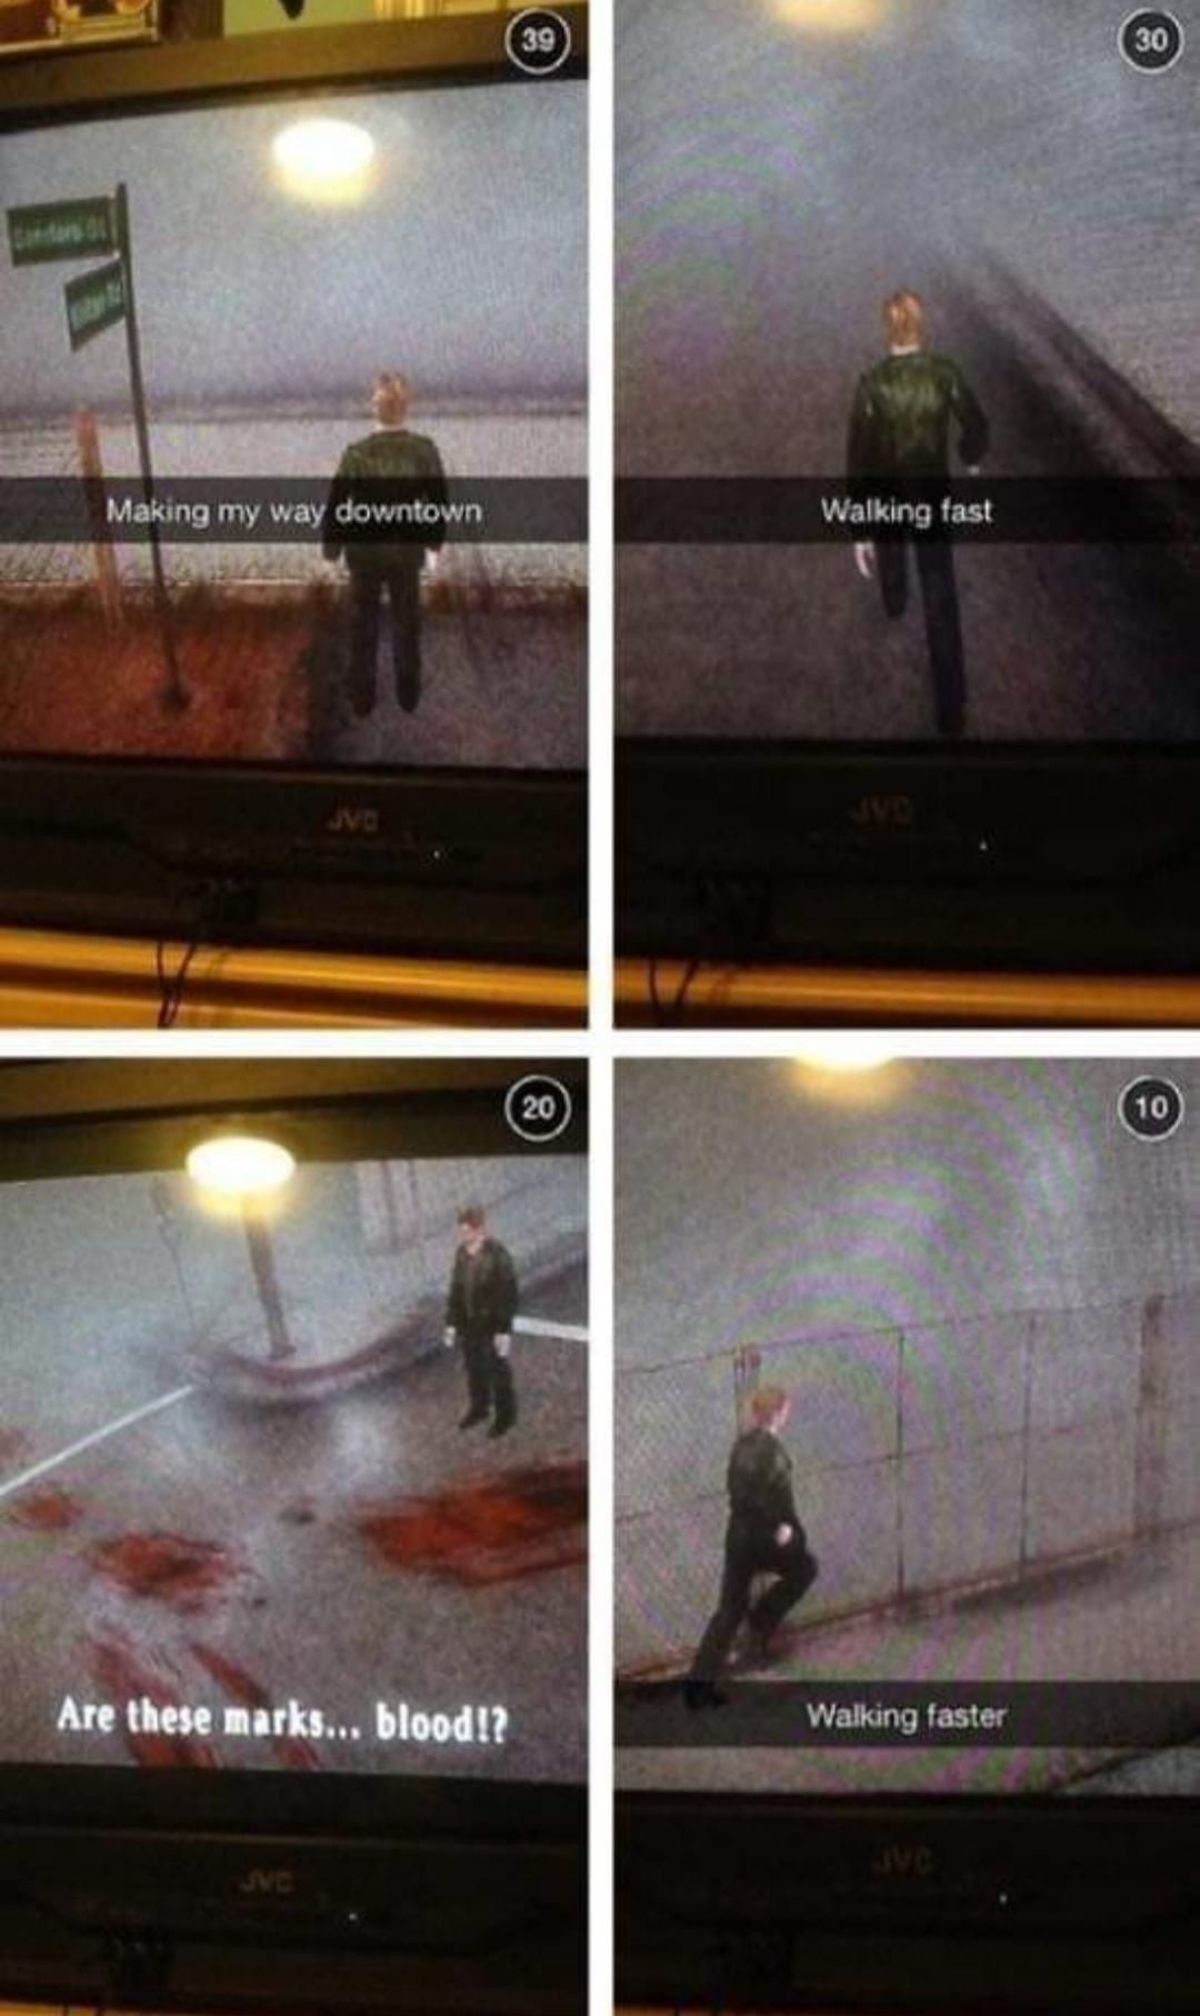 dark sudden Cobra. .. gta npcs when they see you viciously beat a man to death with a golf club